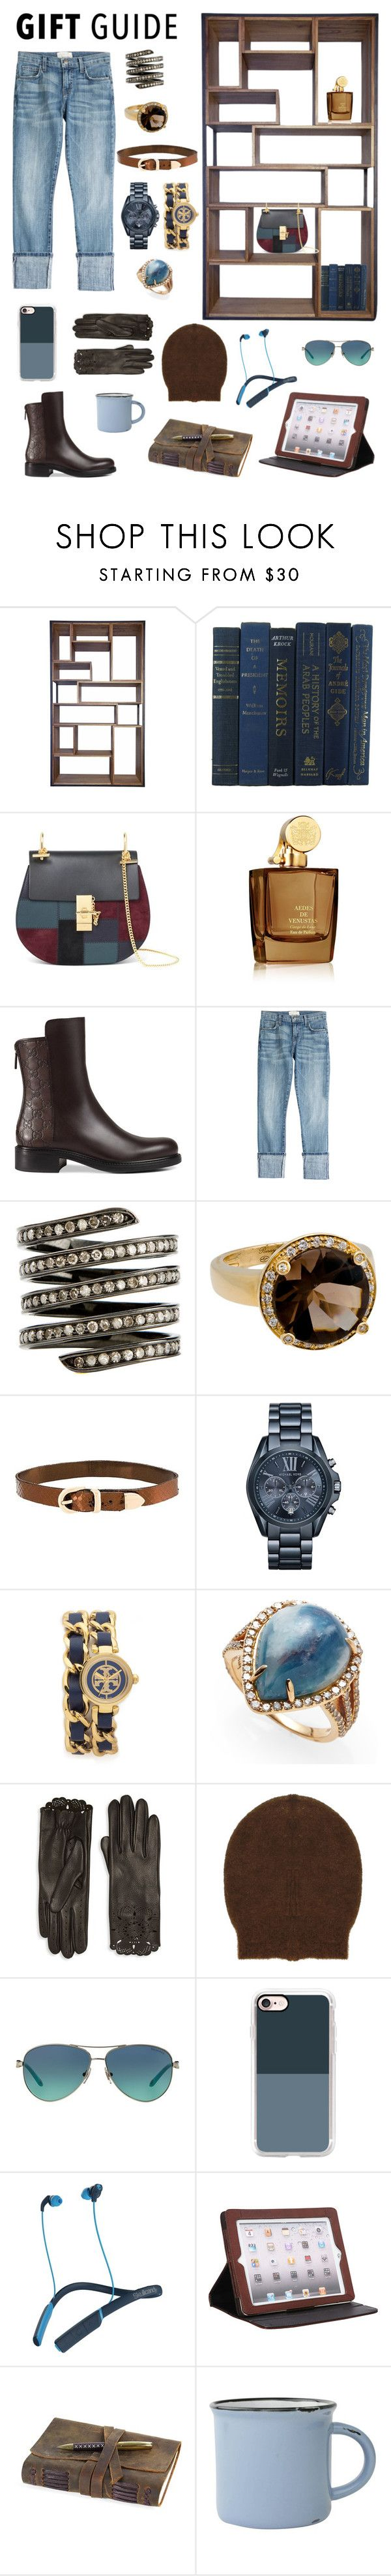 """""""Because I'm worth it."""" by stacy-hardy ❤ liked on Polyvore featuring Chloé, Aedes De Venustas, Gucci, Current/Elliott, Lynn Ban, Poiray Paris, Manokhi, Michael Kors, Tory Burch and Bavna"""